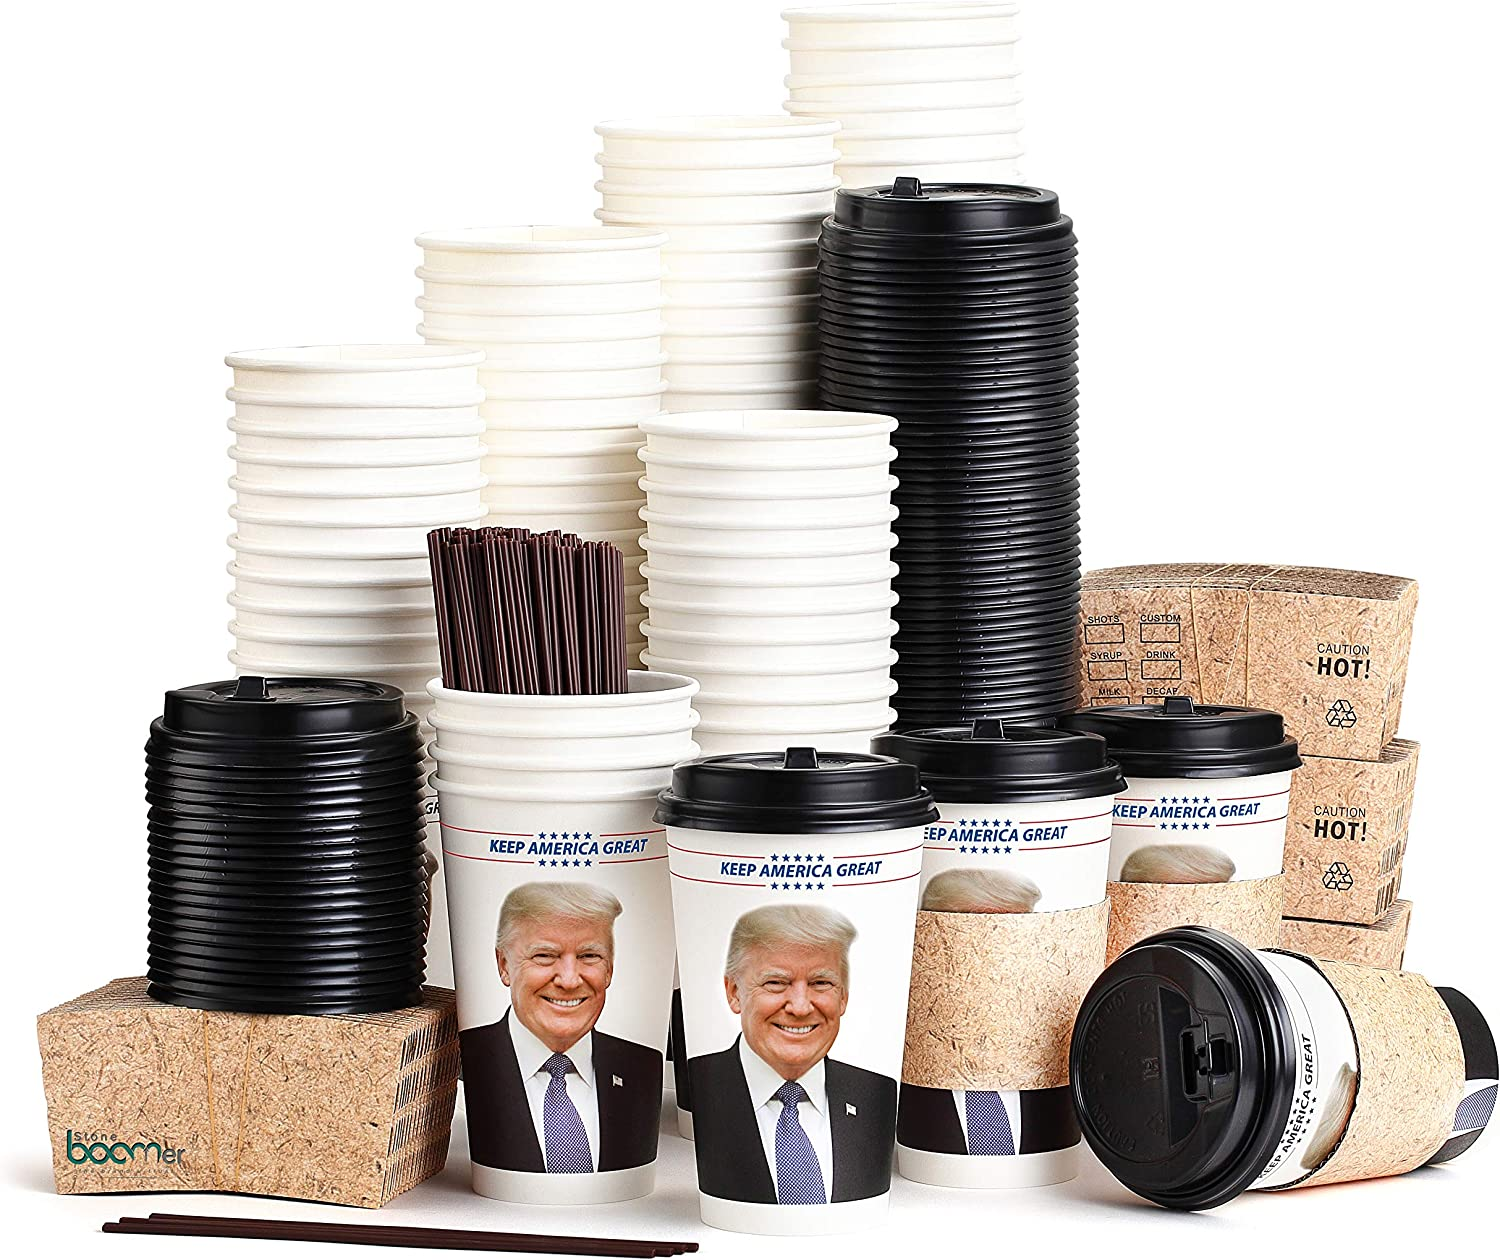 Trump Coffee Cups - 16 Ounce, Set Of 100, Sleeves, Black Lids & Stirrer Straws, Travel To Go Coffee Cups - Disposable Coffee Cups, Paper Coffee Cups - Like Starbucks, coffee cup, By Stone boomer